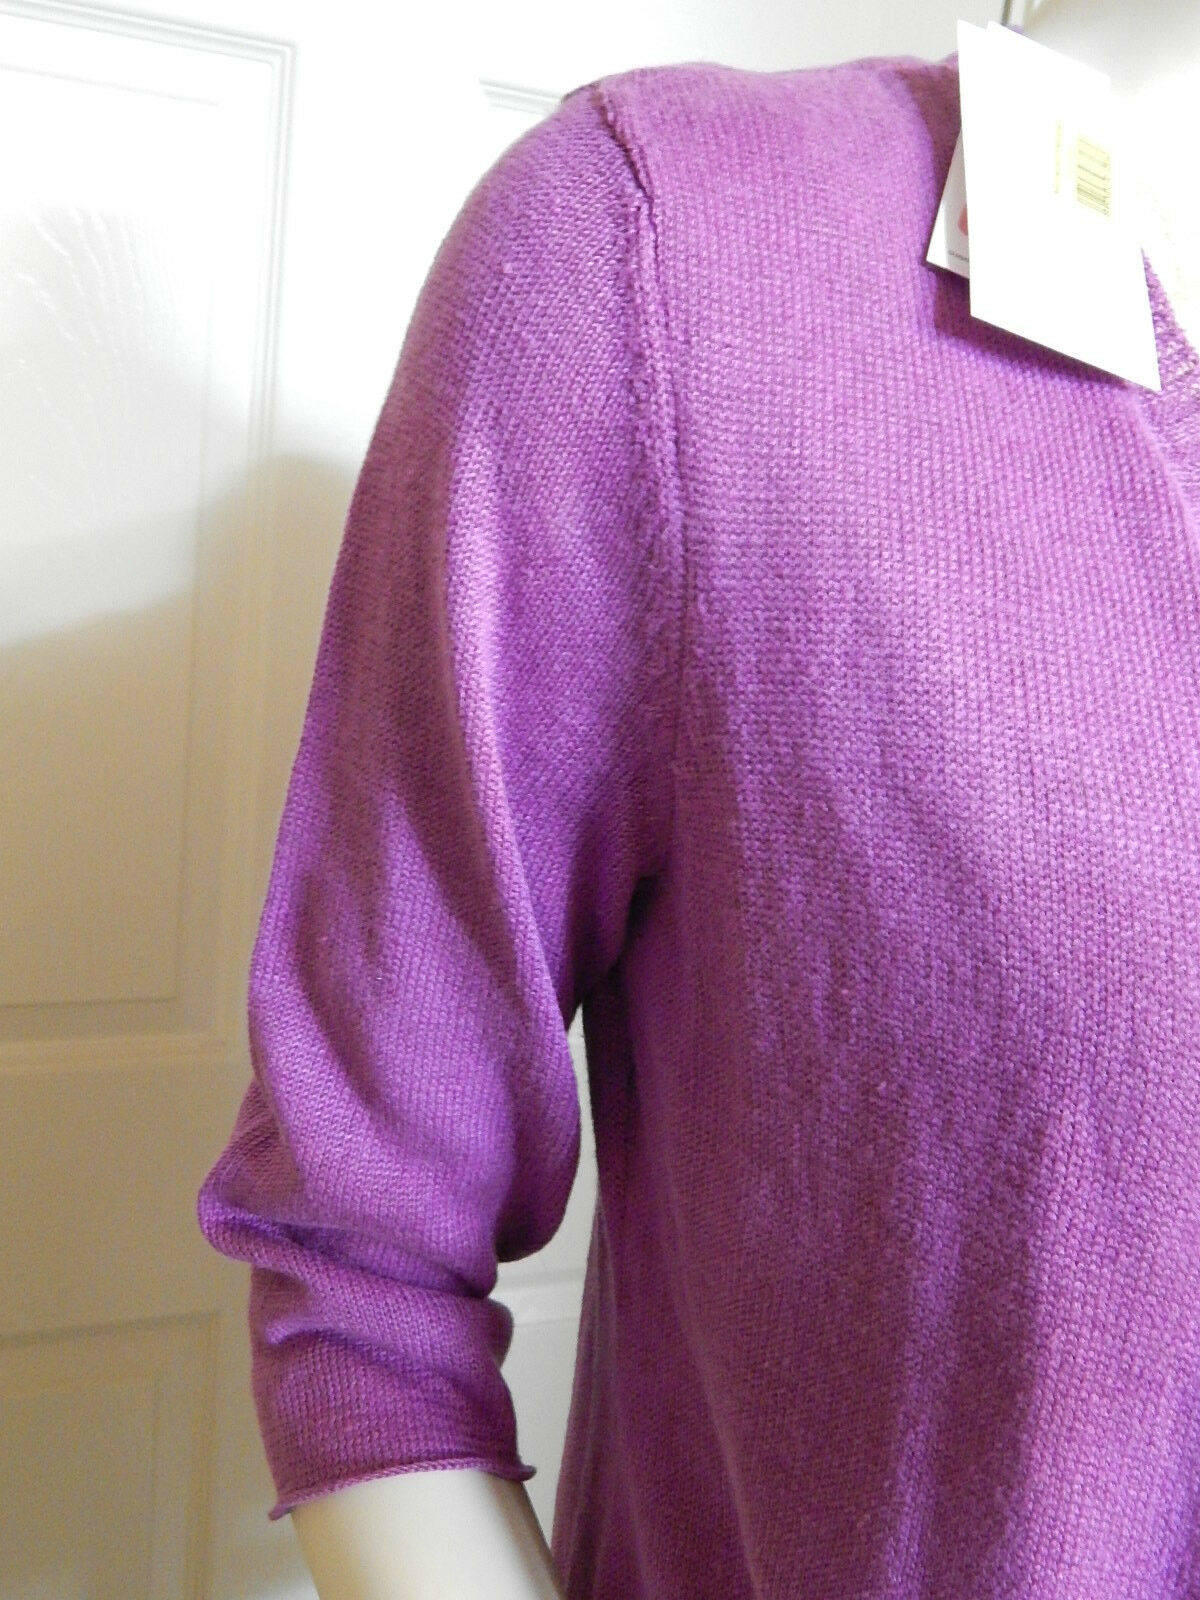 EILEEN FISHER Cardigan Sweater Sweater Sweater 100% Linen NEW WITH TAGS  3dceda